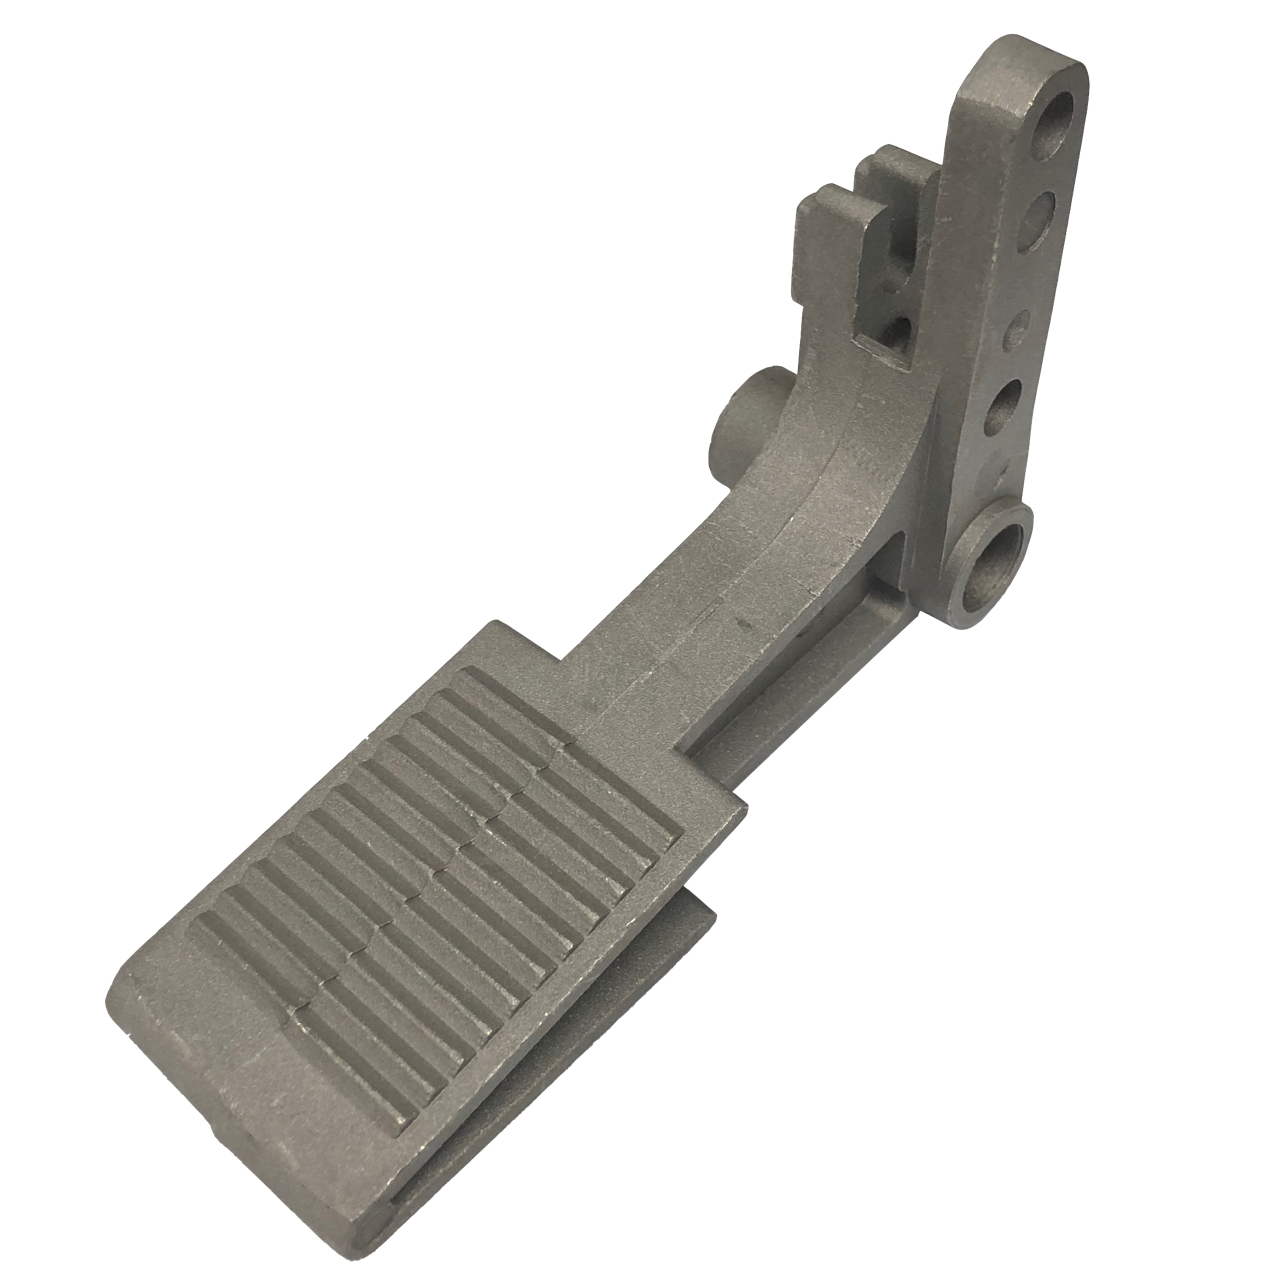 W-6000293 Inflation Pedal for Weaver® Tire Changers